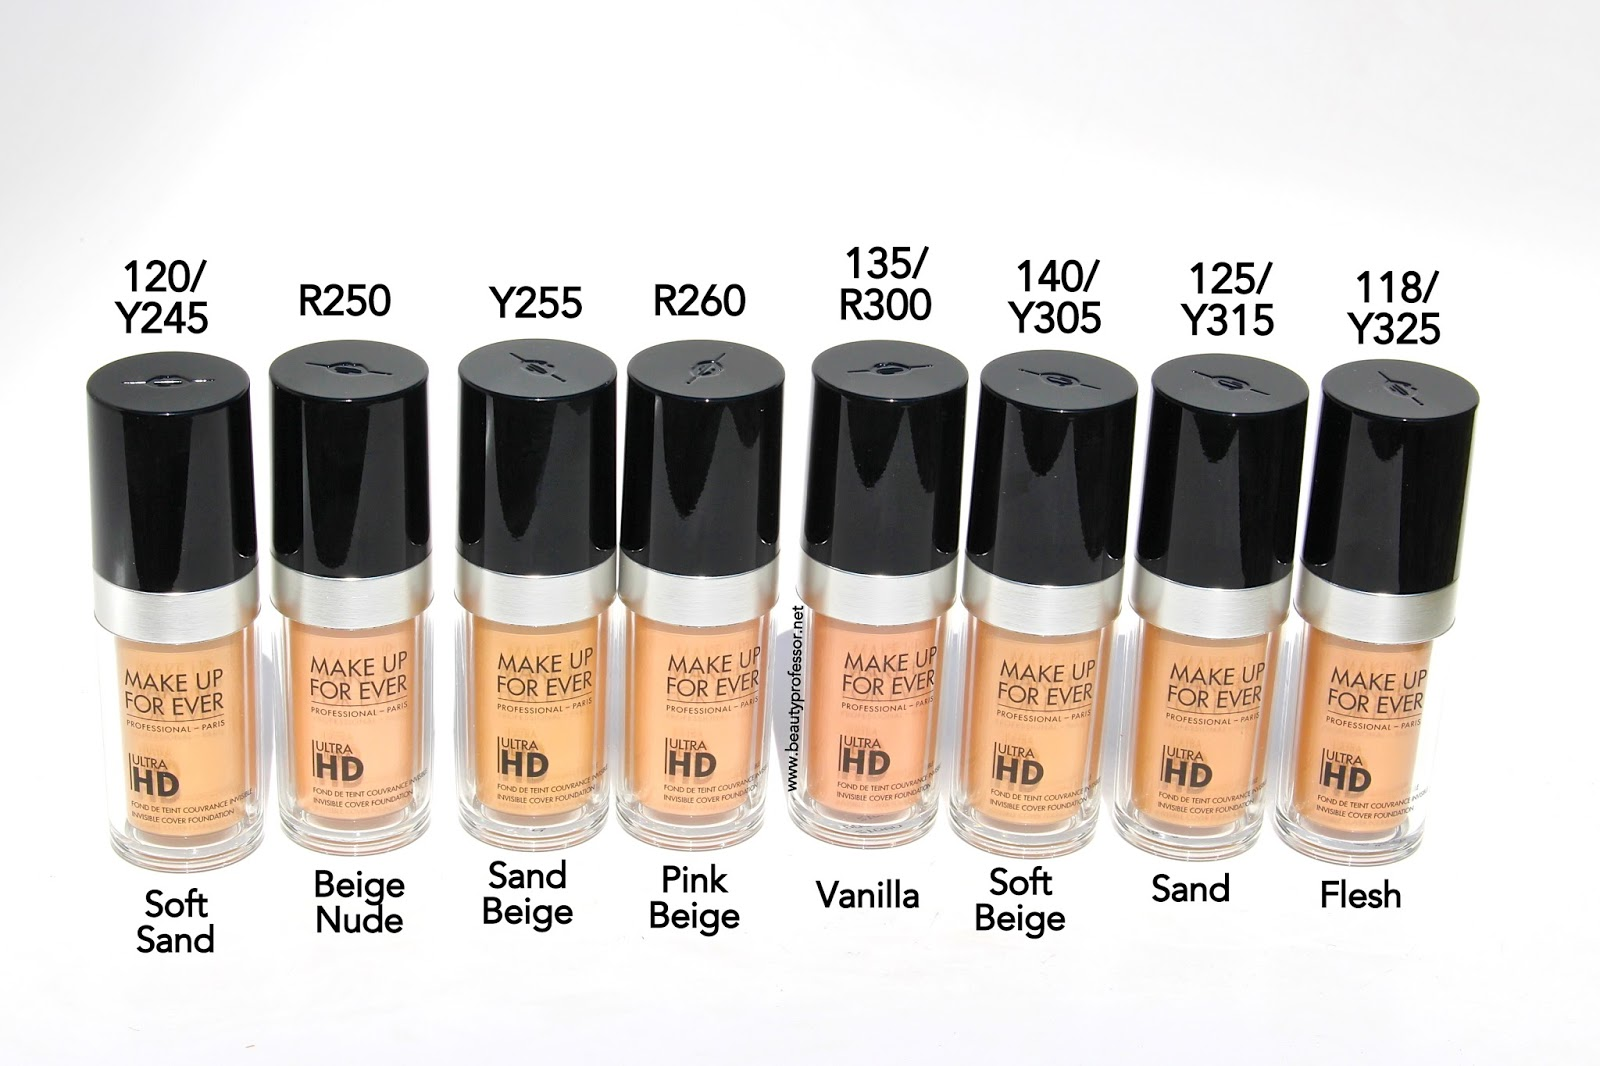 Hd forever foundation colors